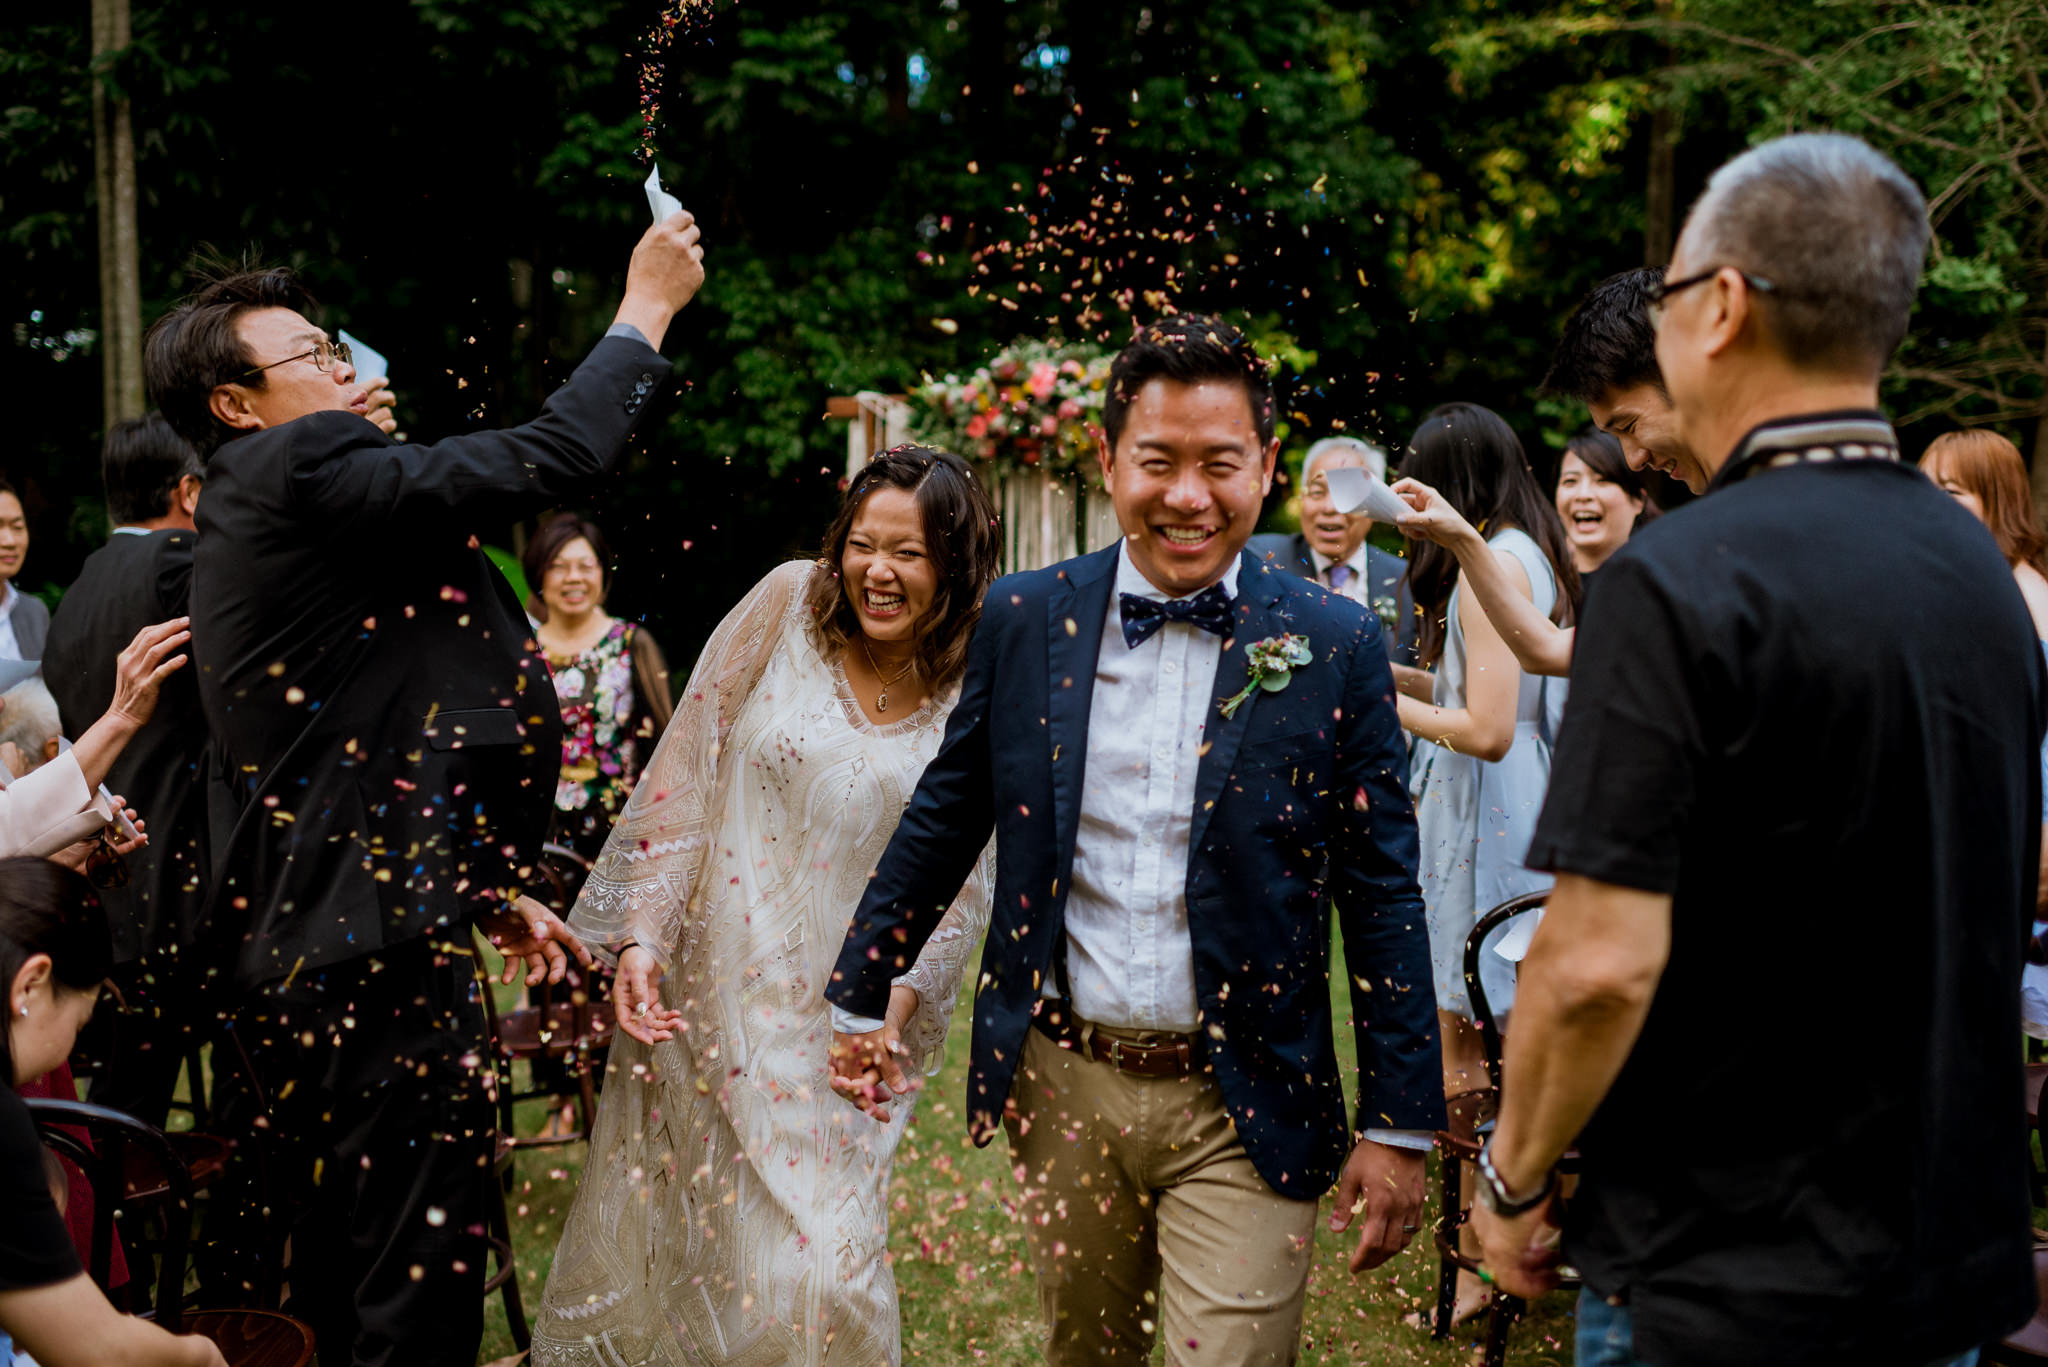 An asian bride and groom laugh as their guests throw confetti on them